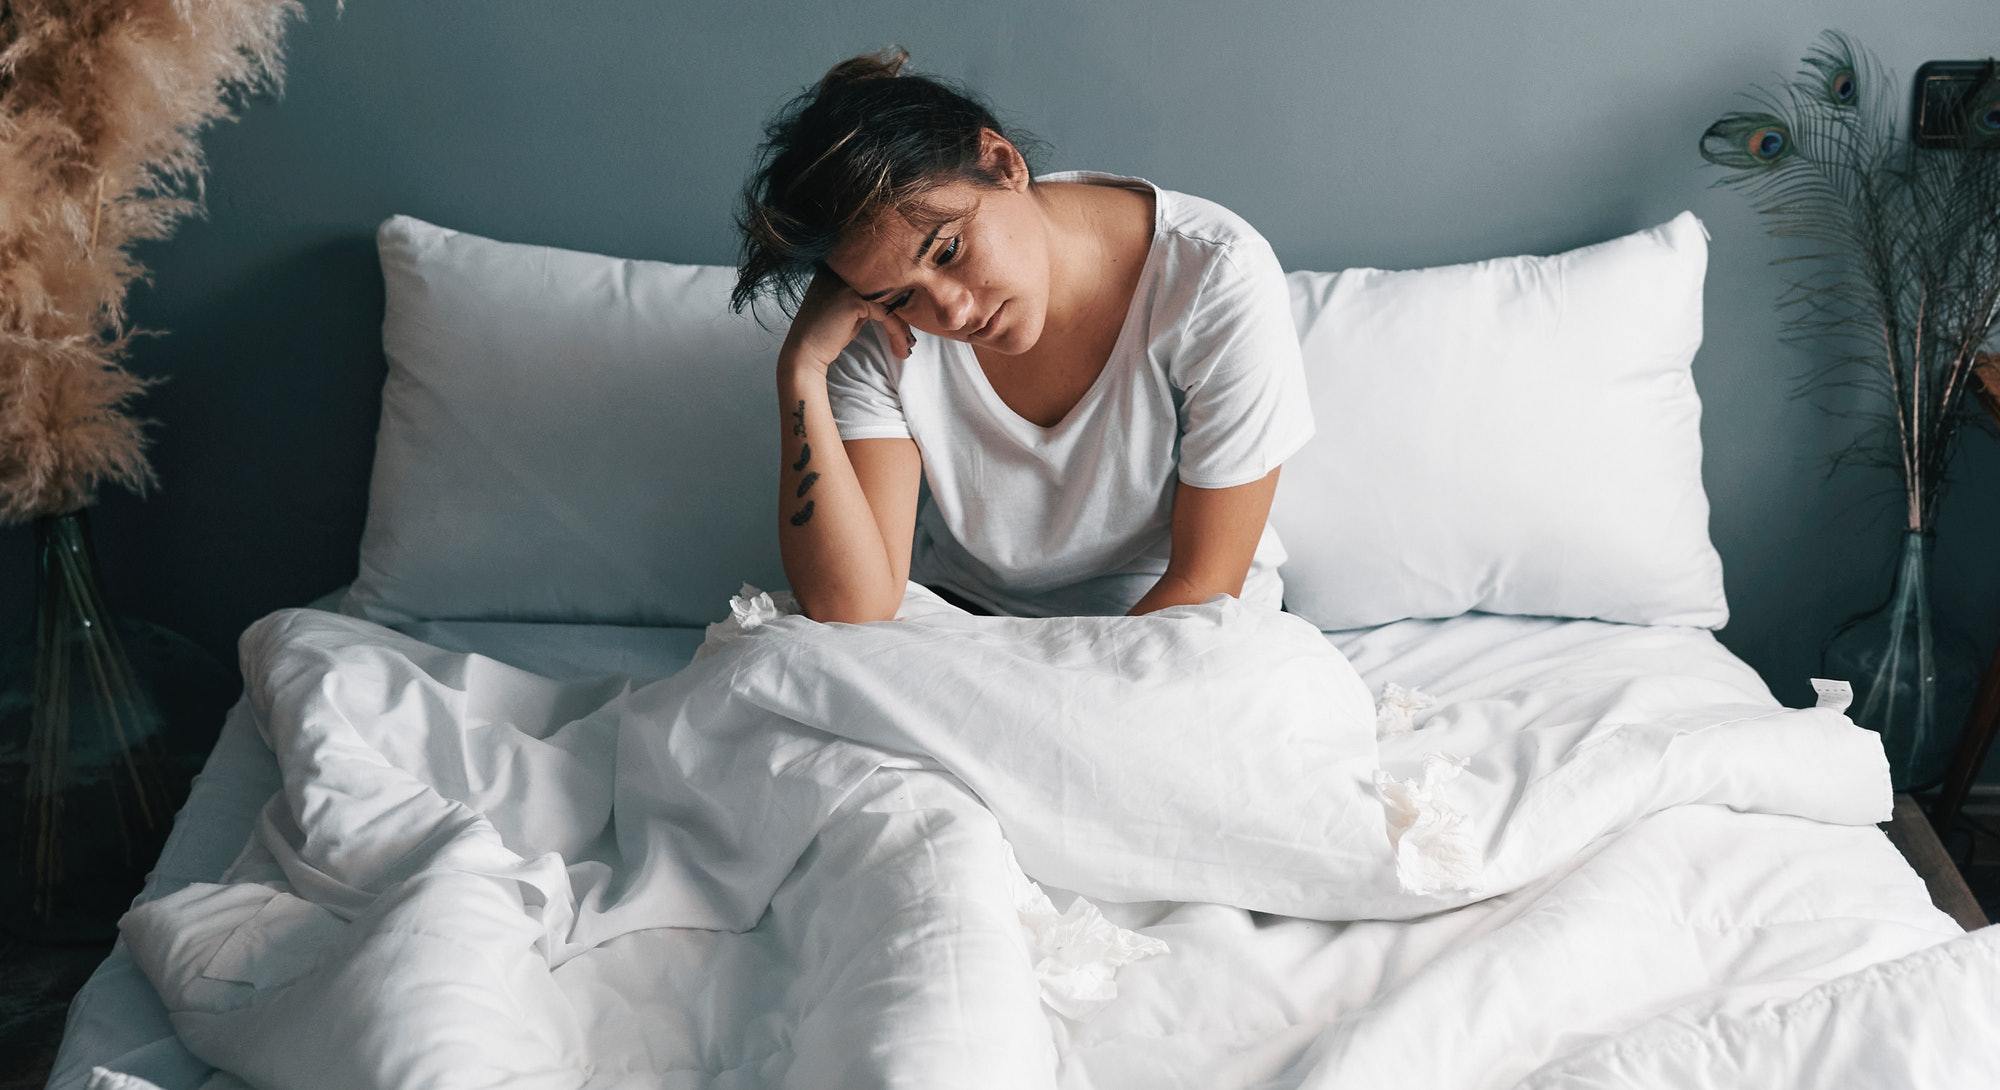 A woman lies in bed next to pampas grass, experiencing fatigue after a mild covid case turned into longhaul symptoms 6 months later.